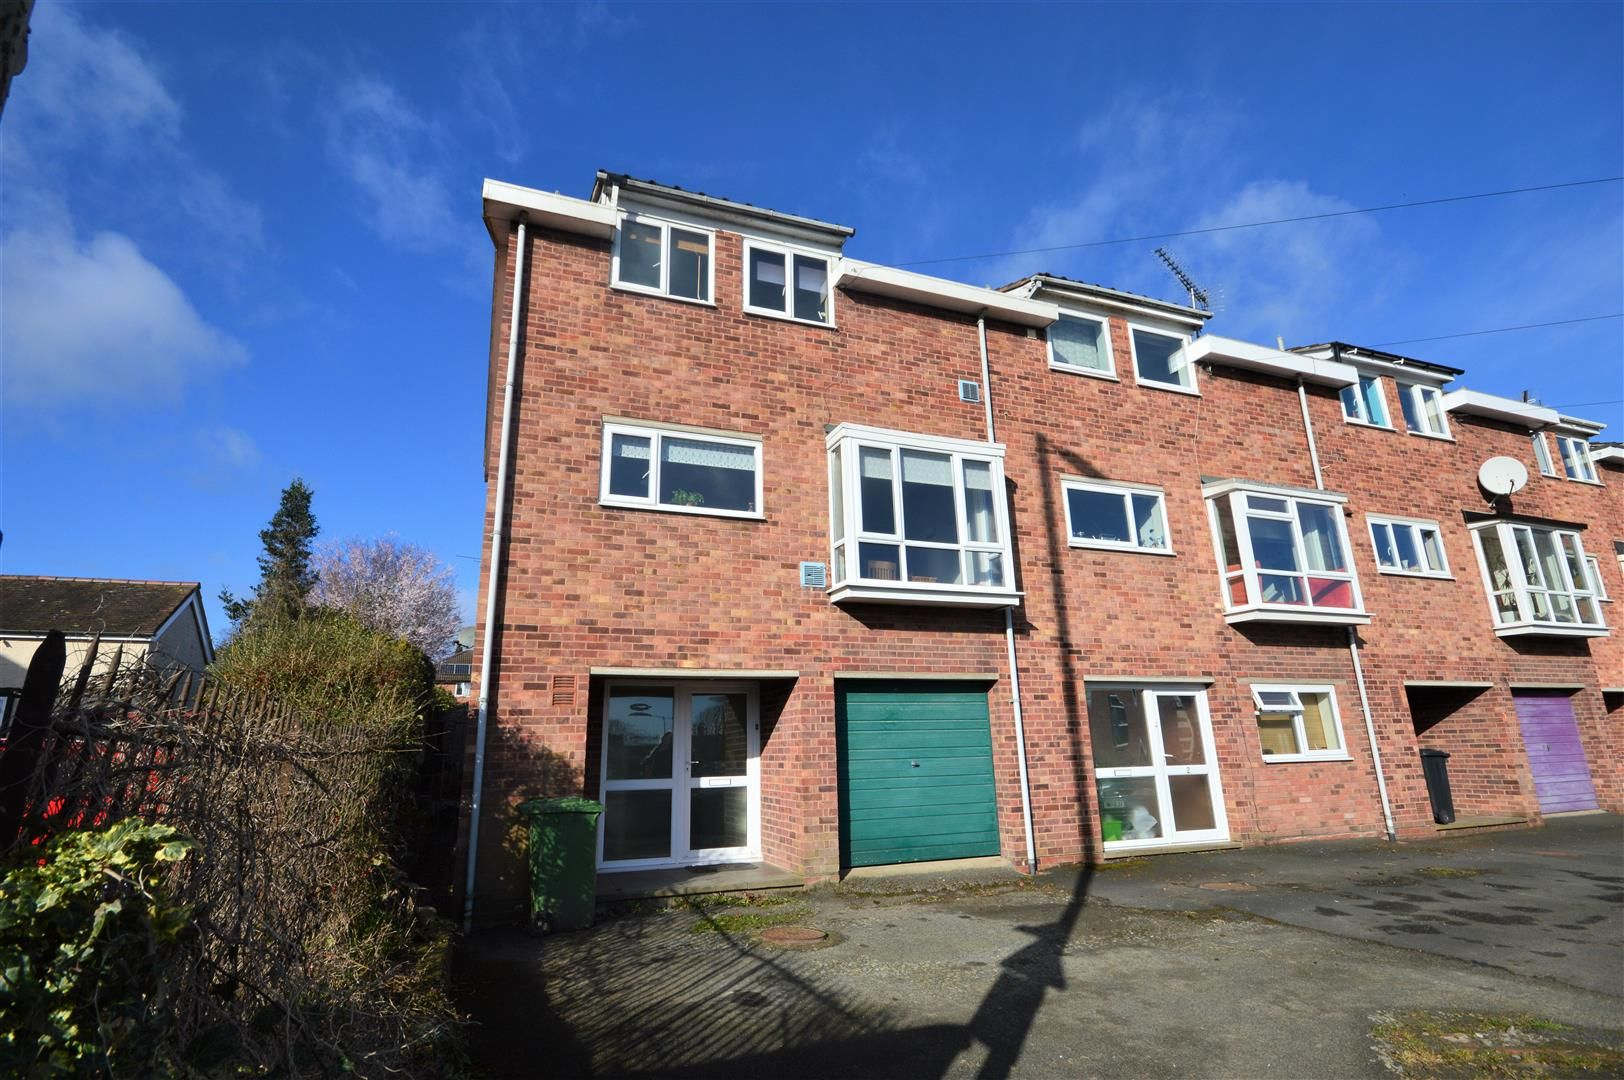 3 bed end-of-terrace to rent in Leominster, HR6